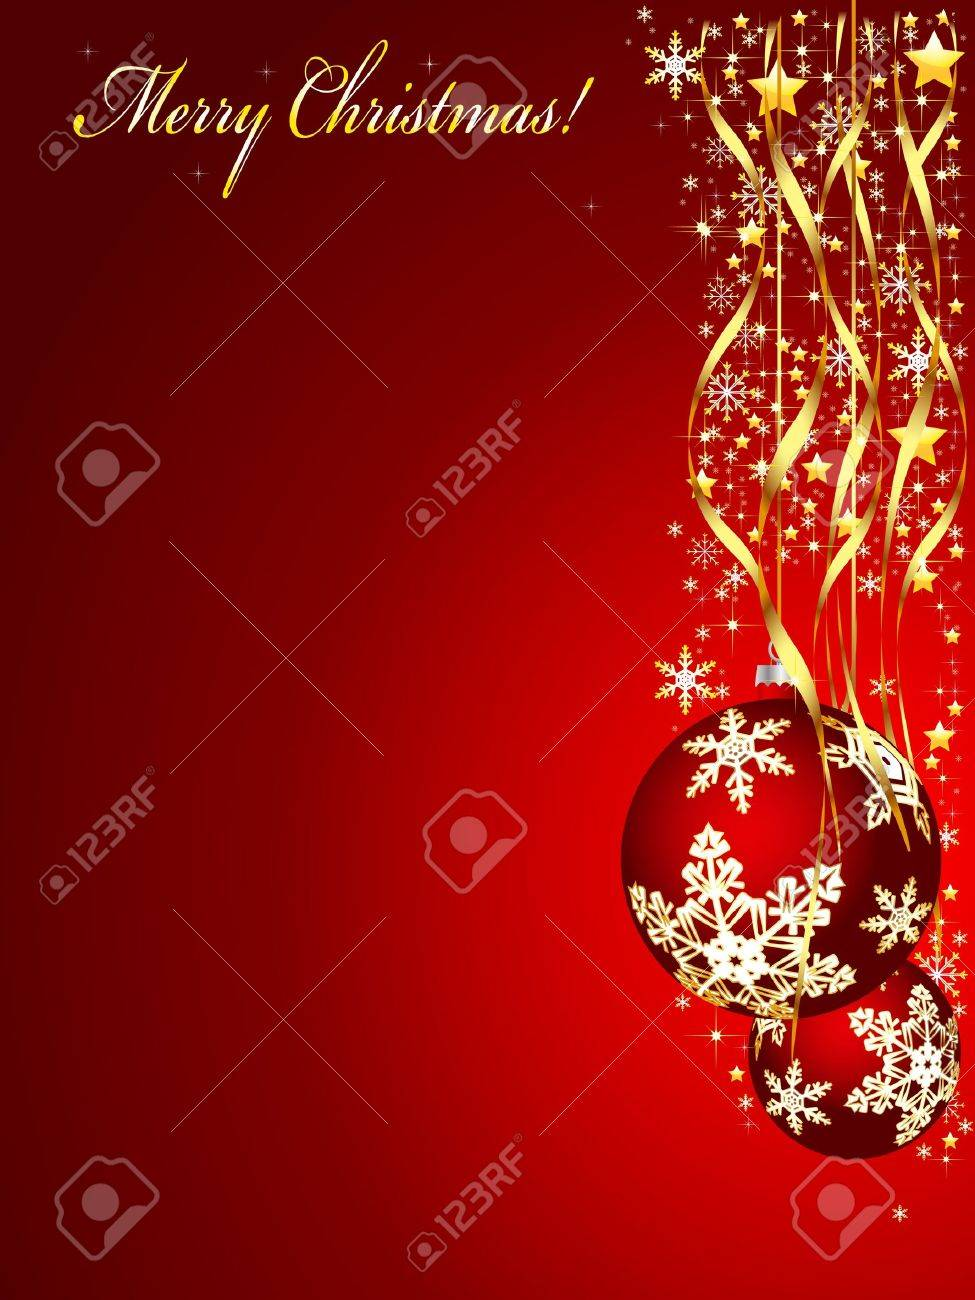 Christmas illustration on a red background  Vector Stock Vector - 16219139